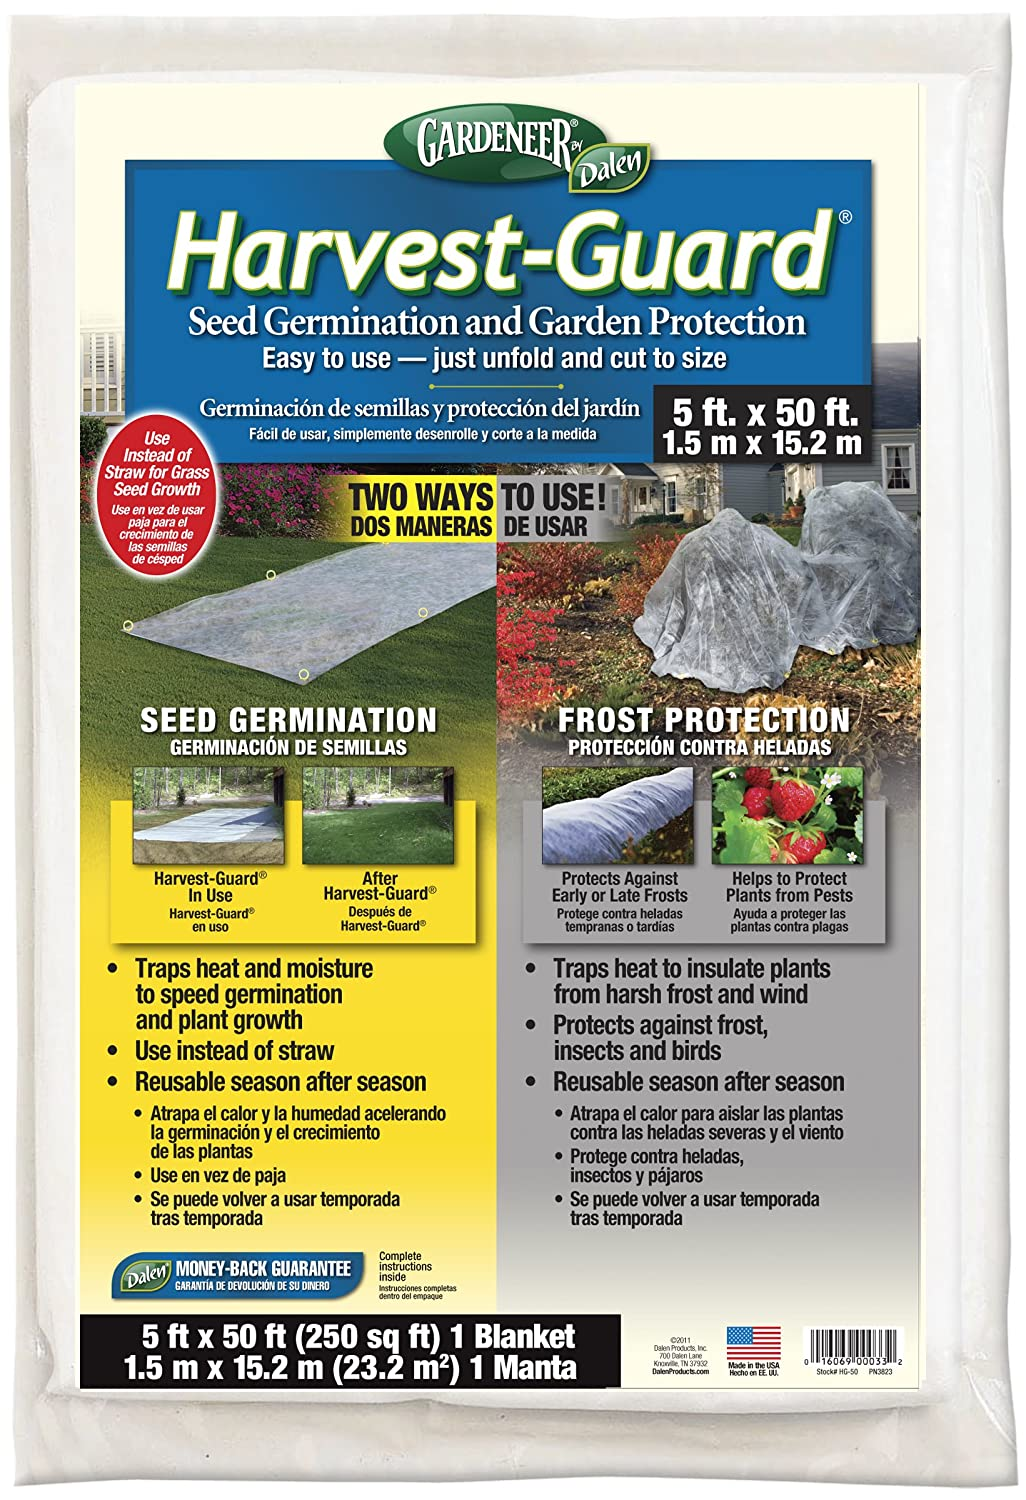 Gardeneer by Dalen Harvest-Guard Seed Germination & Garden Protection Cover 5' x 50'